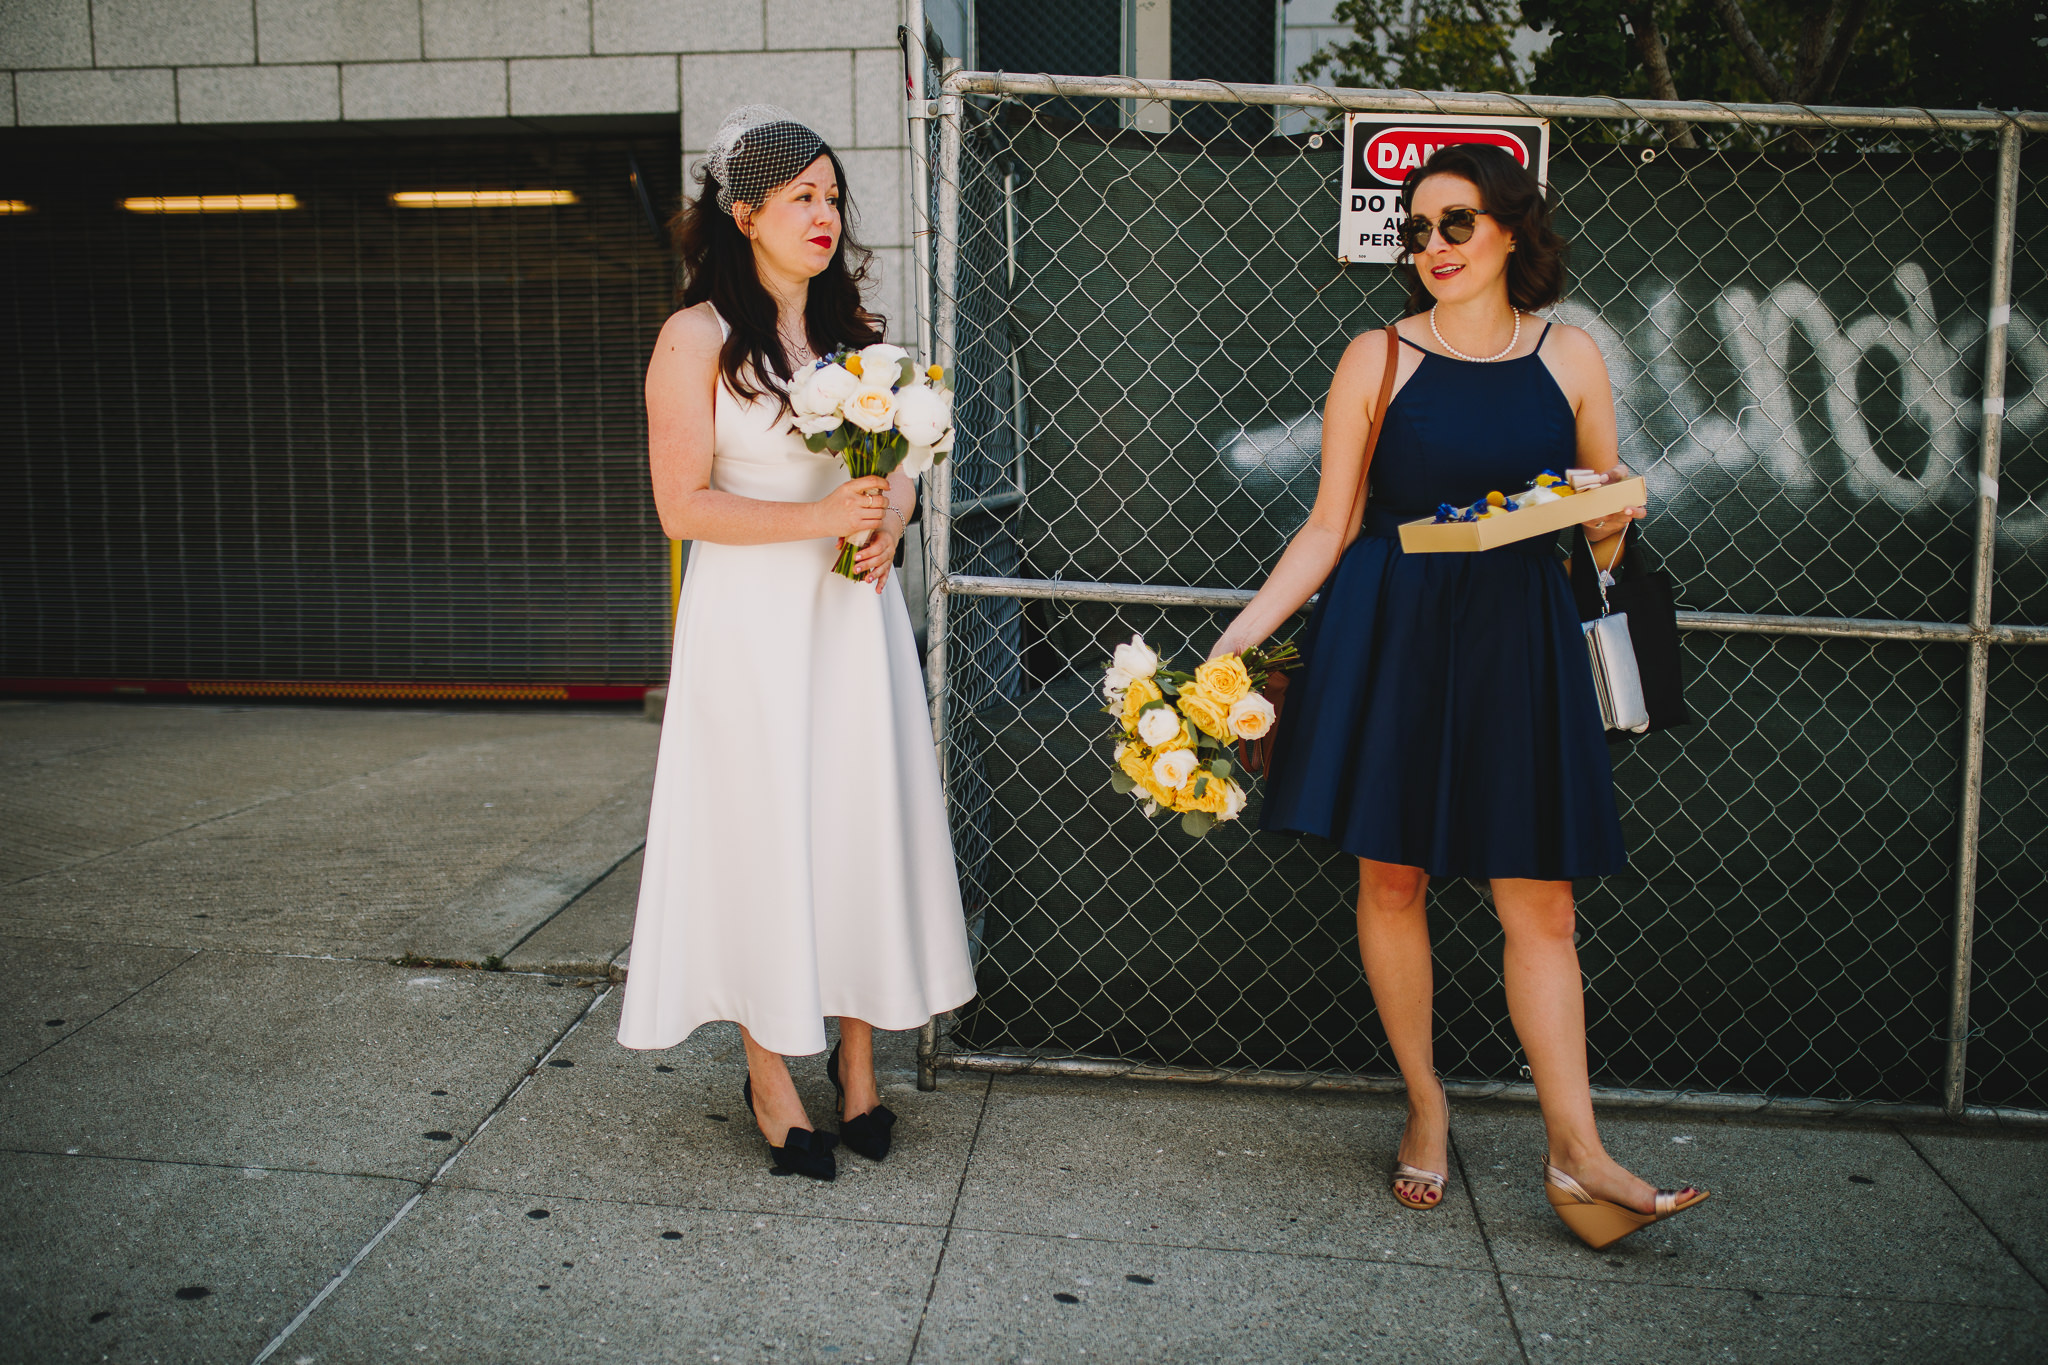 Archer Inspired Photography SF City Hall Elopement Wedding Lifestyle Documentary Affordable Photographer-32.jpg